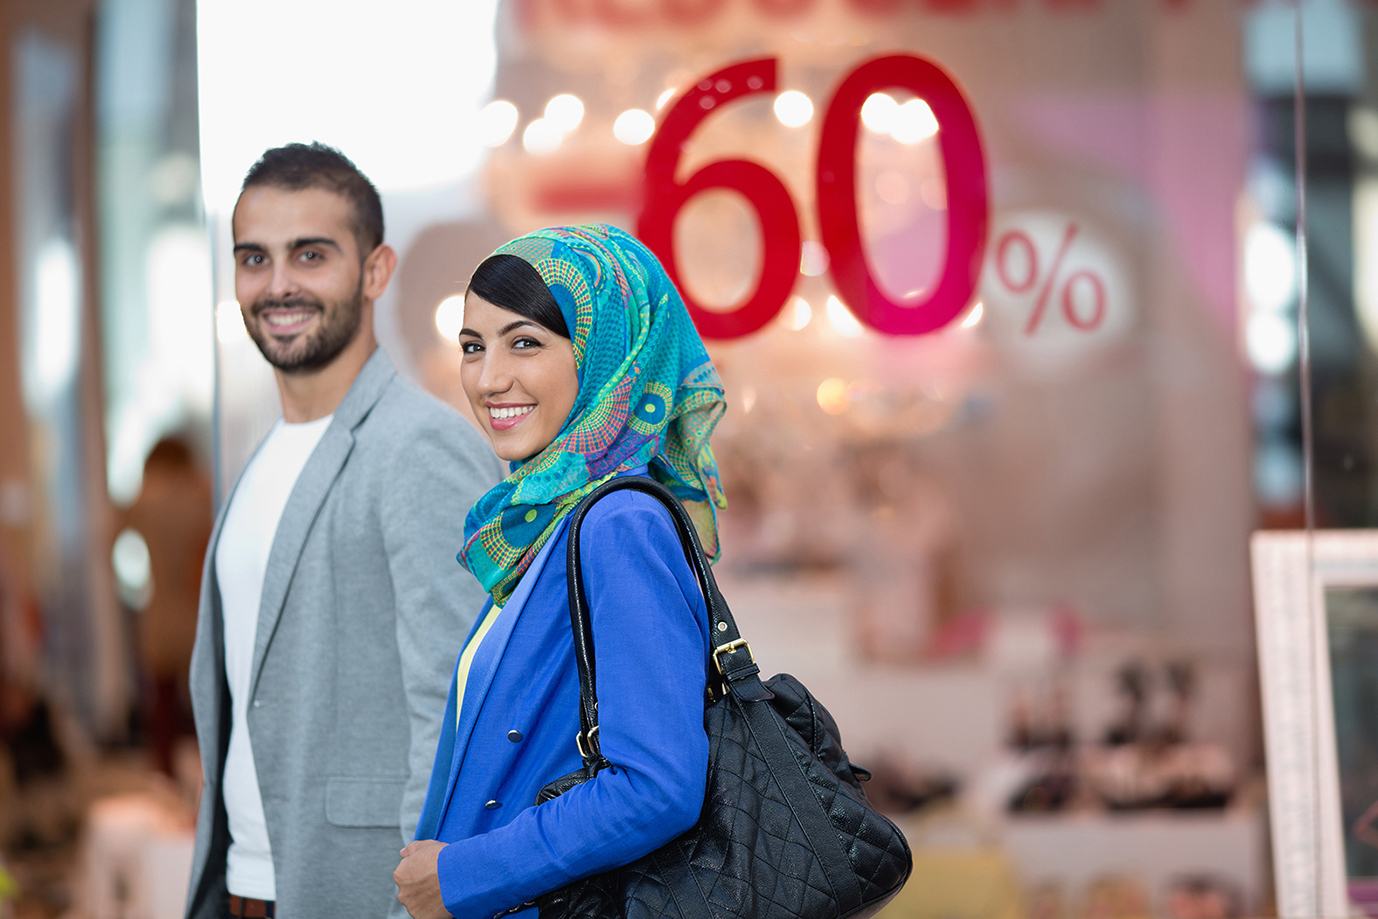 Nearly half of Arab youth plan to further their education but financial constraints holding many back